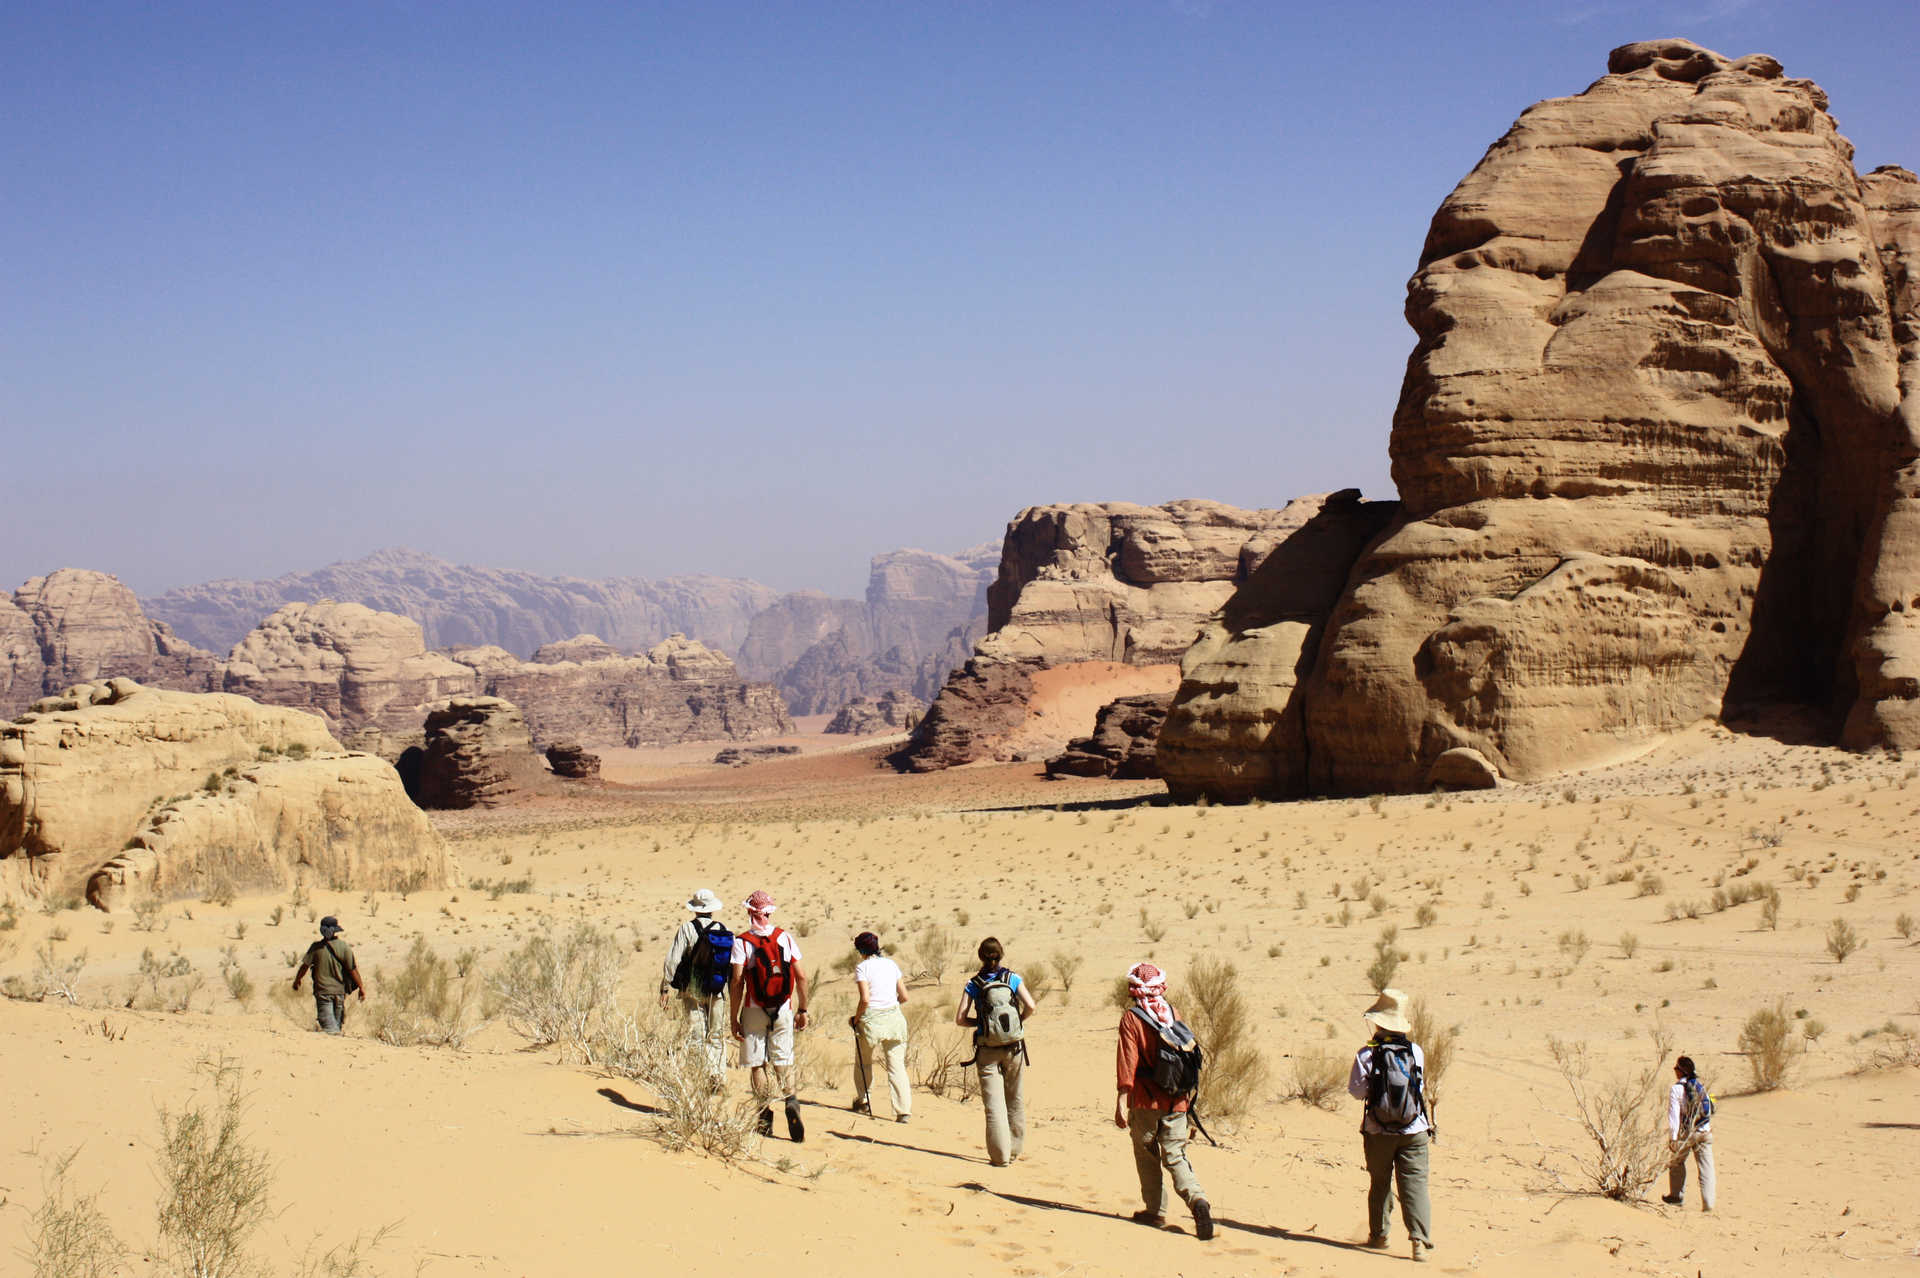 Hikers in the Wadi Rum desert